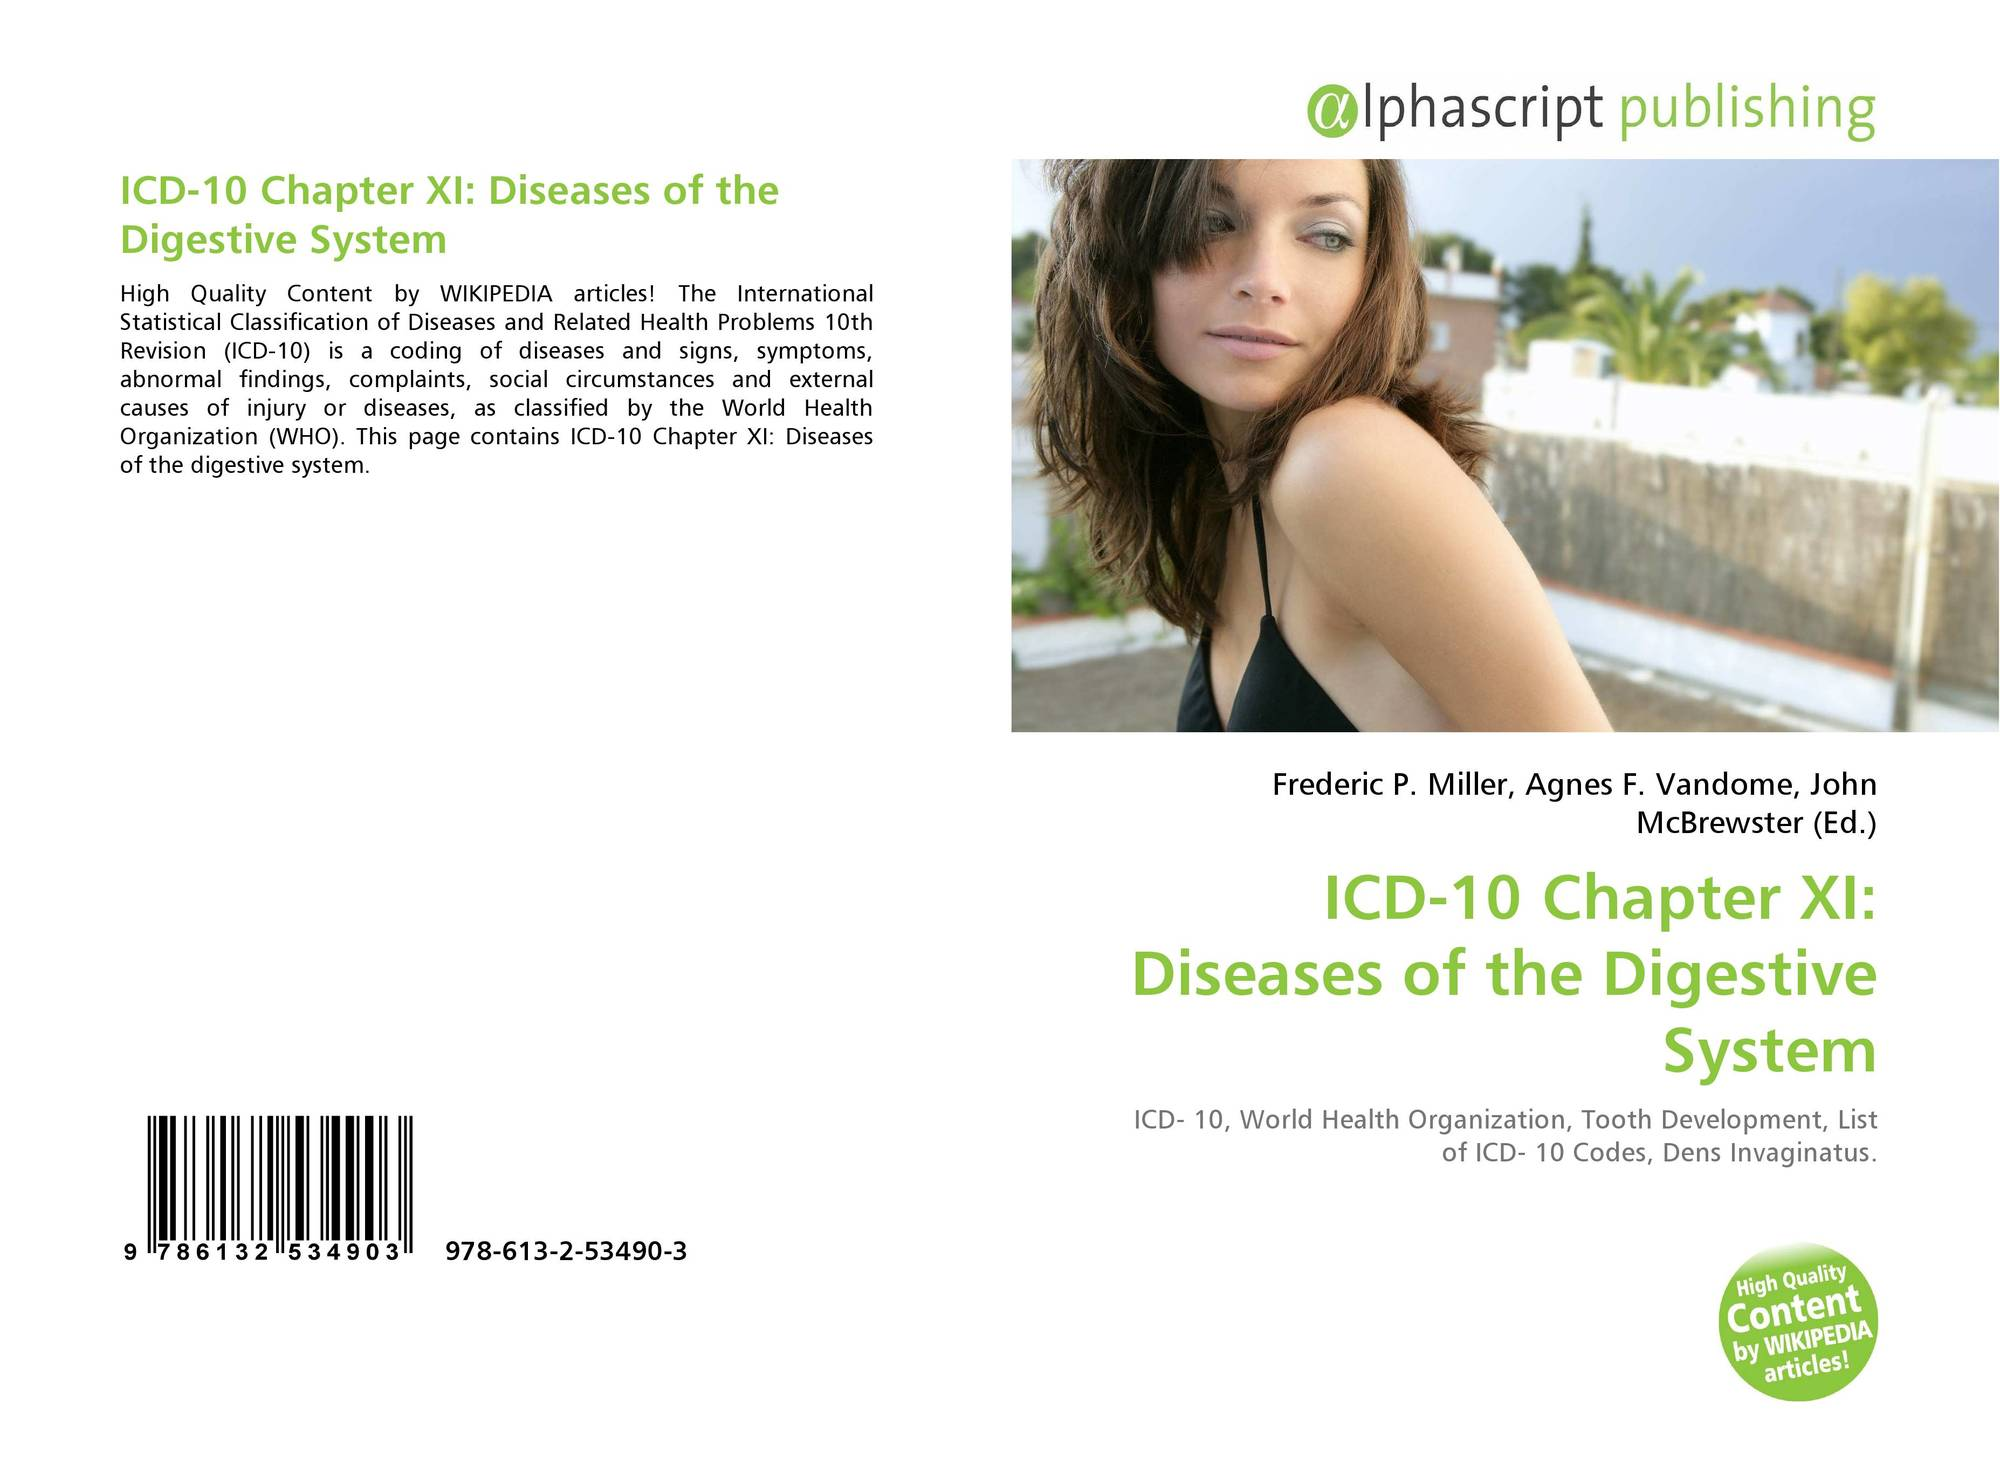 ICD-10 Chapter XI: Diseases of the Digestive System, 978-613